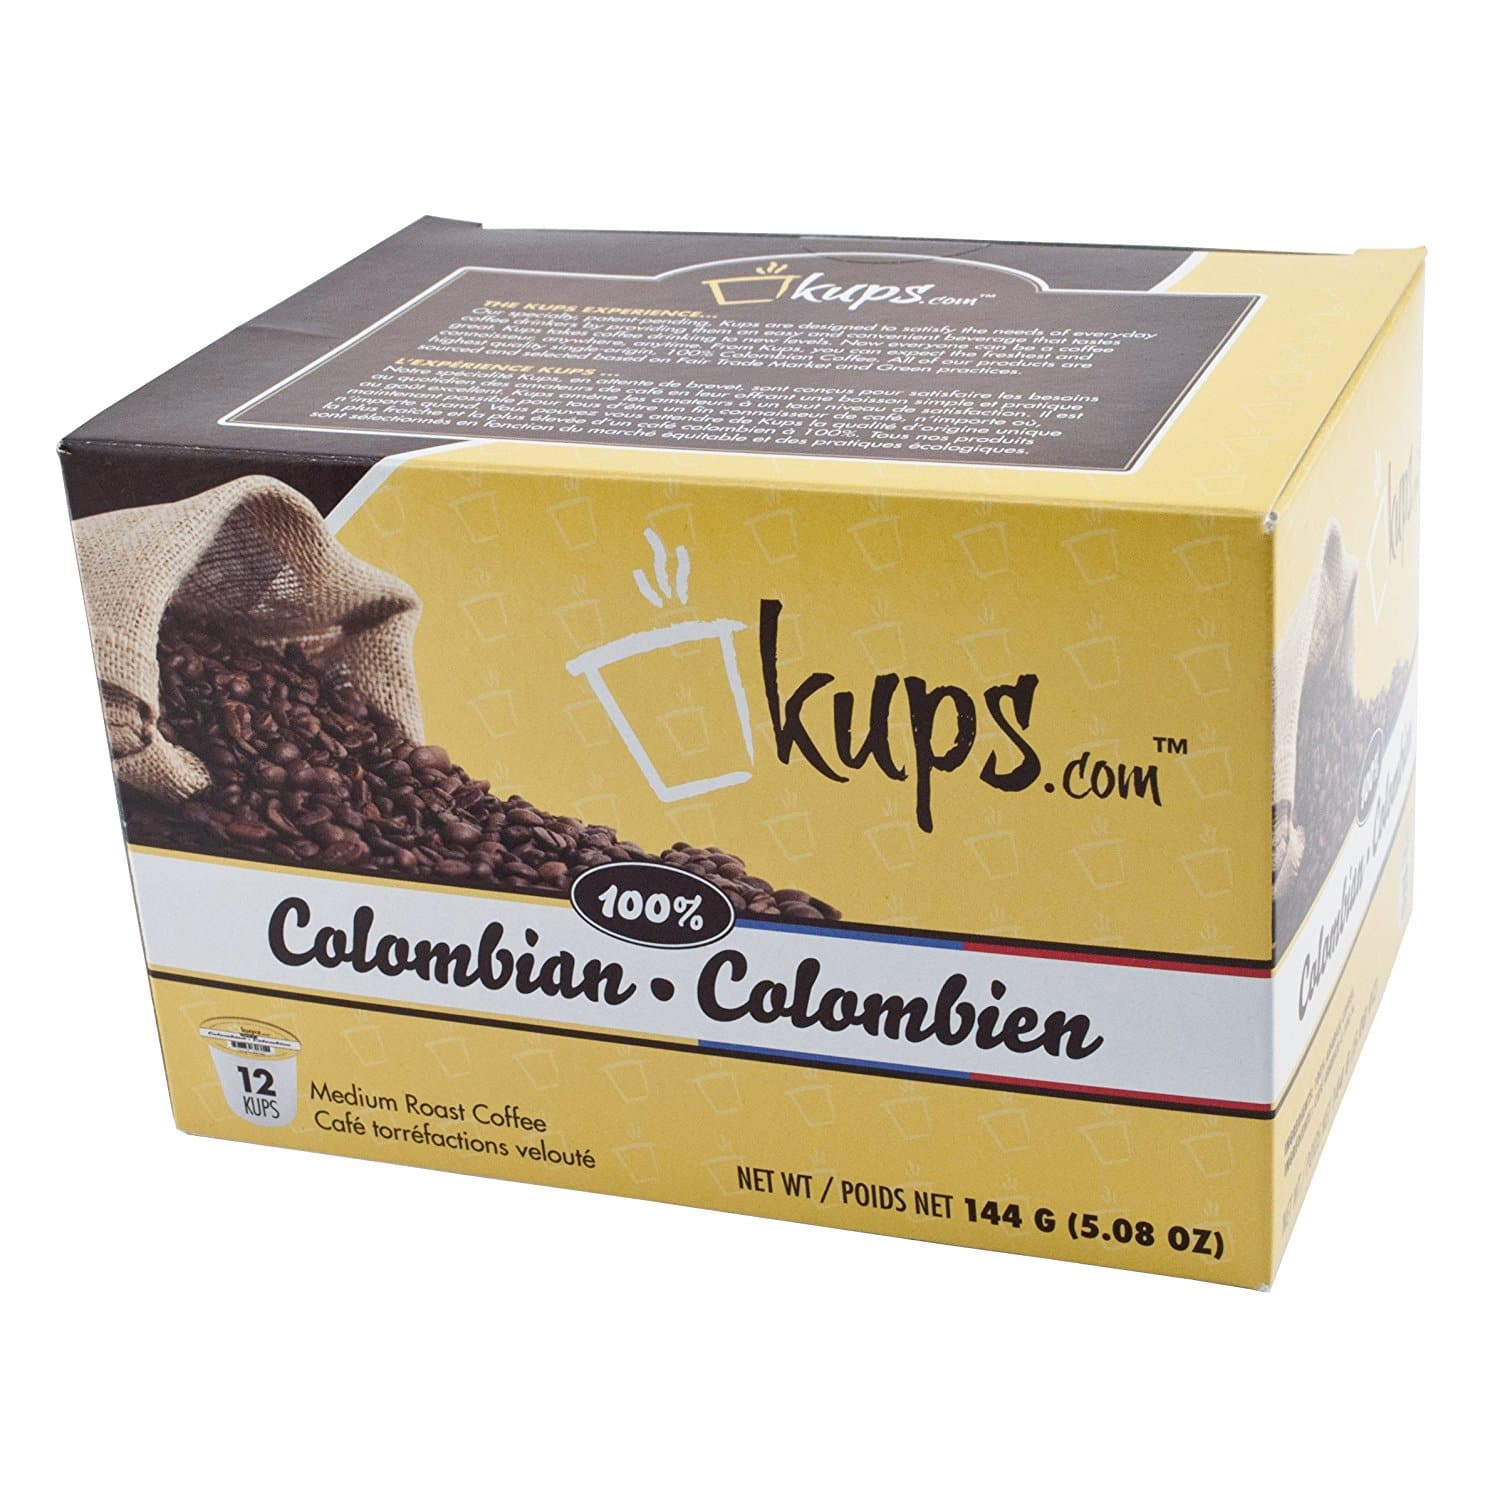 72-Count Danmar 100% Colombian Coffee K-Cups for $14.95